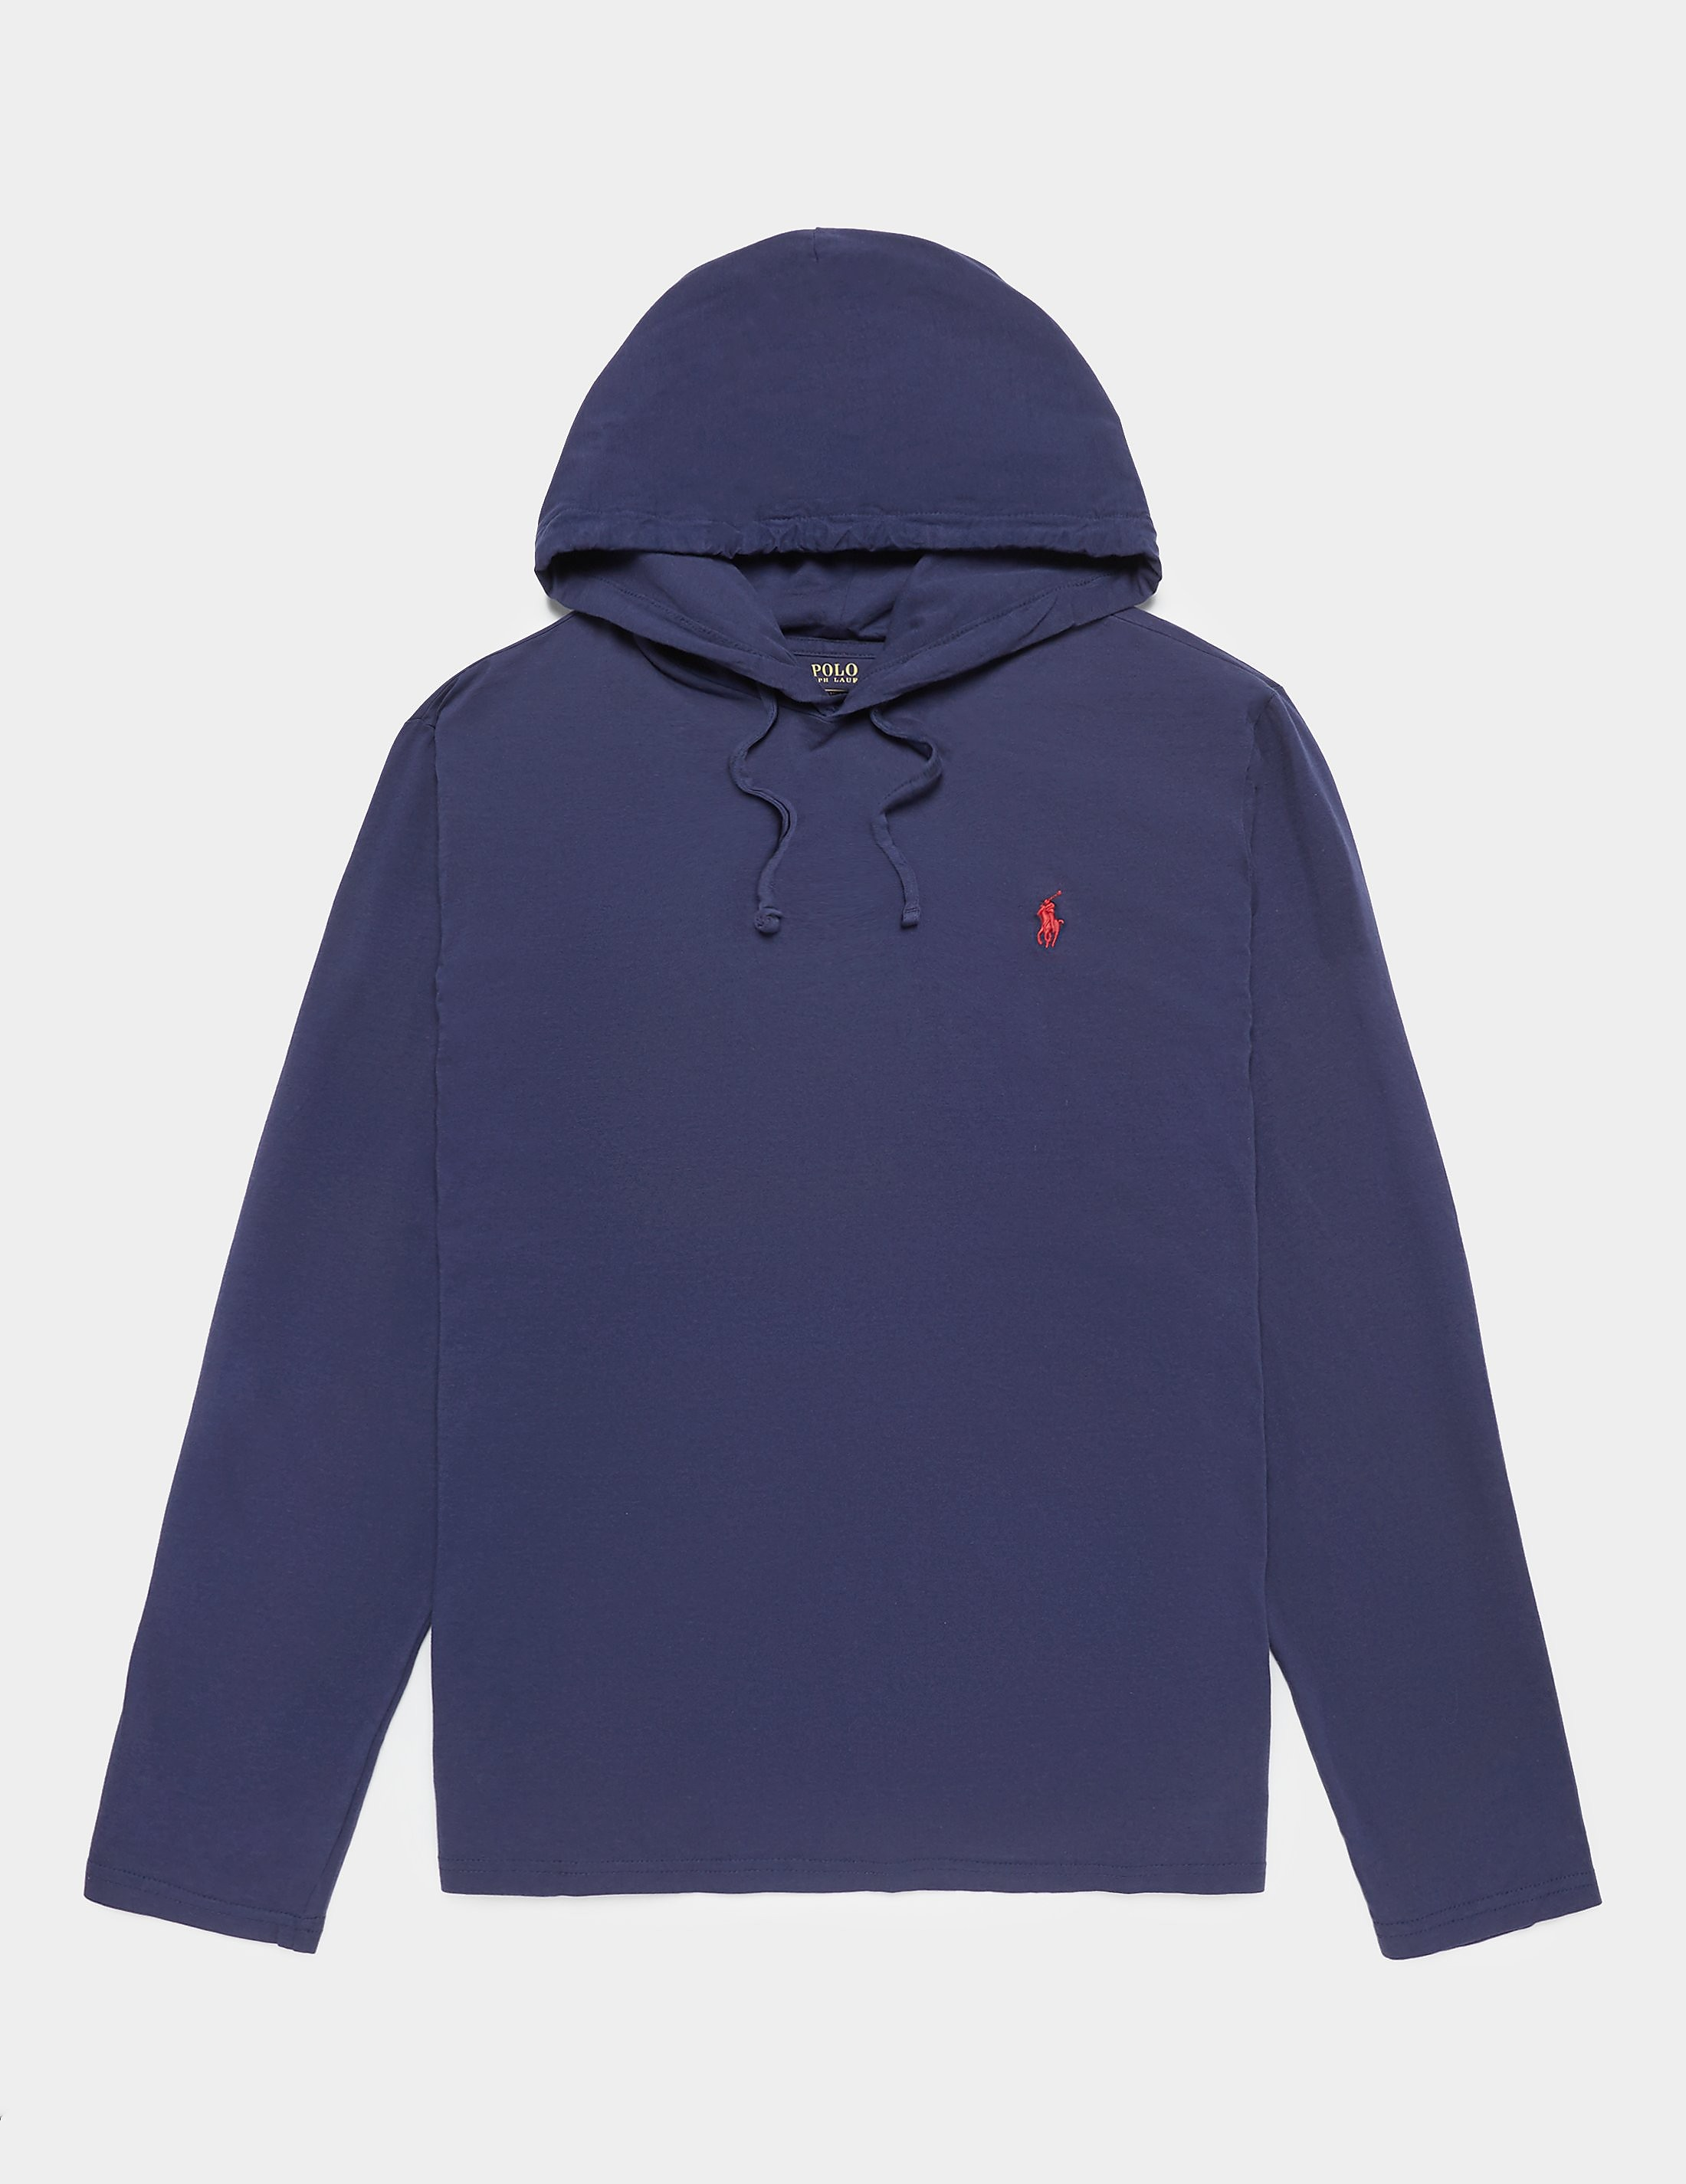 Polo Ralph Lauren Hooded Long Sleeve T-Shirt